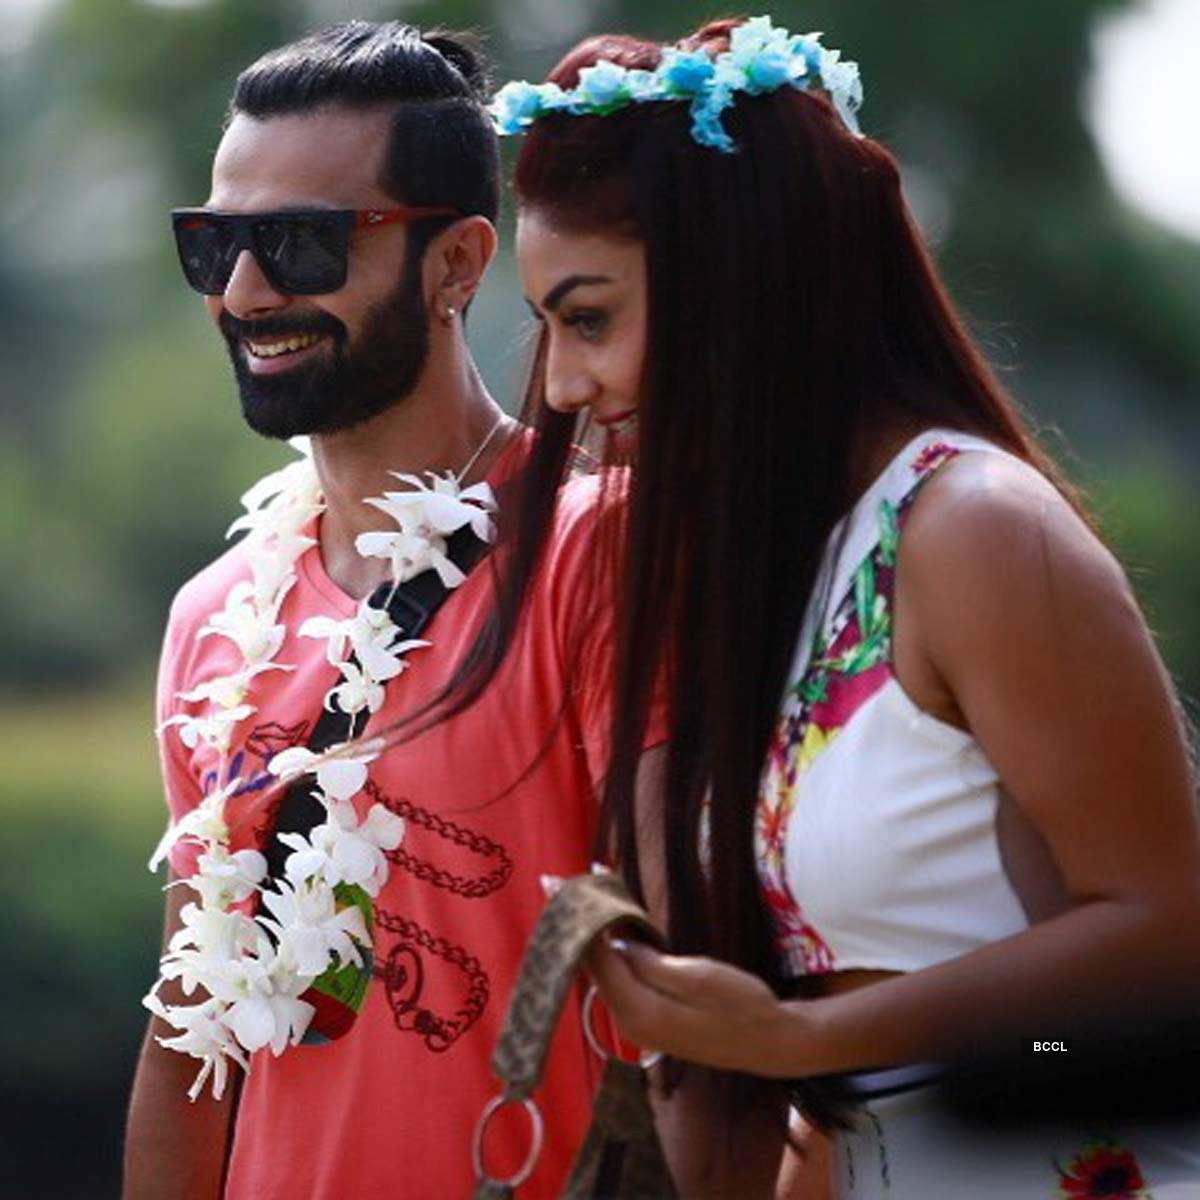 Pictures of Ashmit Patel and Mahekk Chahal before the couple ended their five-year-long relationship